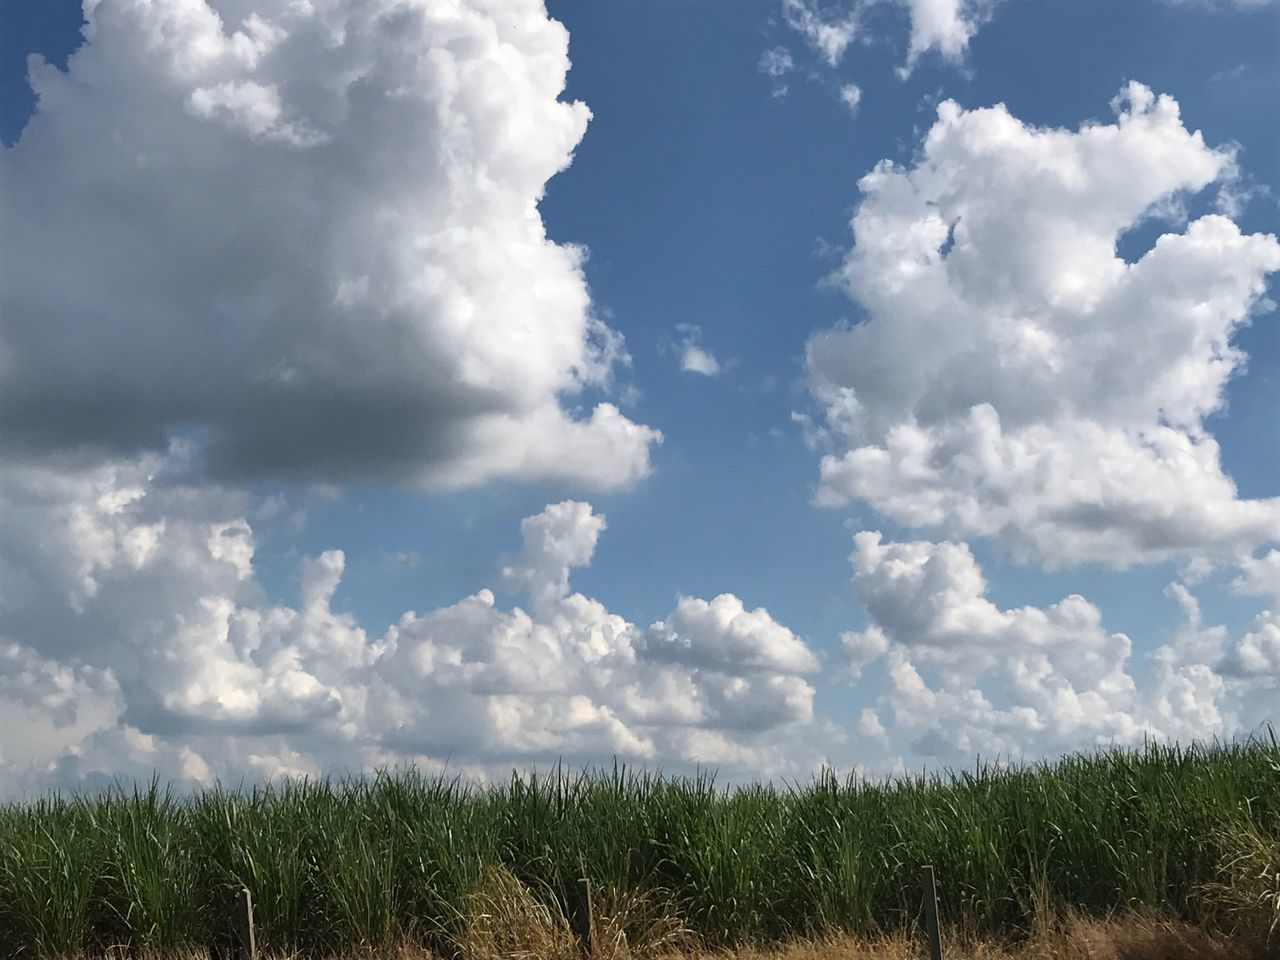 sky, cloud - sky, field, nature, tranquility, day, growth, grass, scenics, no people, beauty in nature, tranquil scene, agriculture, outdoors, landscape, rural scene